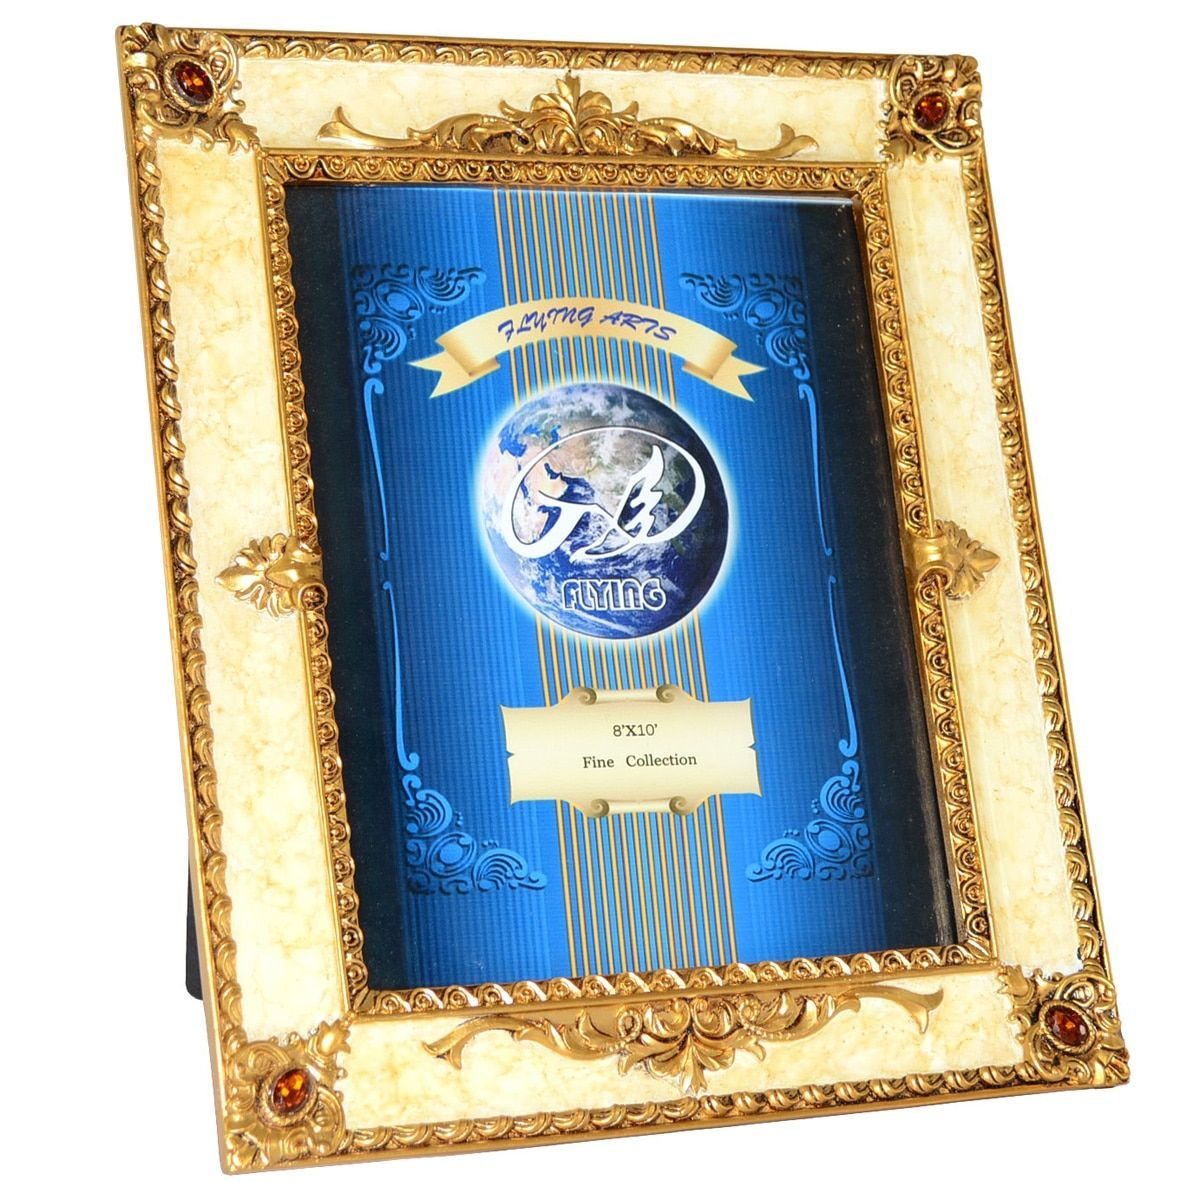 11x13 inch gold marble picture frame marble pictures and gold 11x13 inch gold marble picture frame jeuxipadfo Image collections